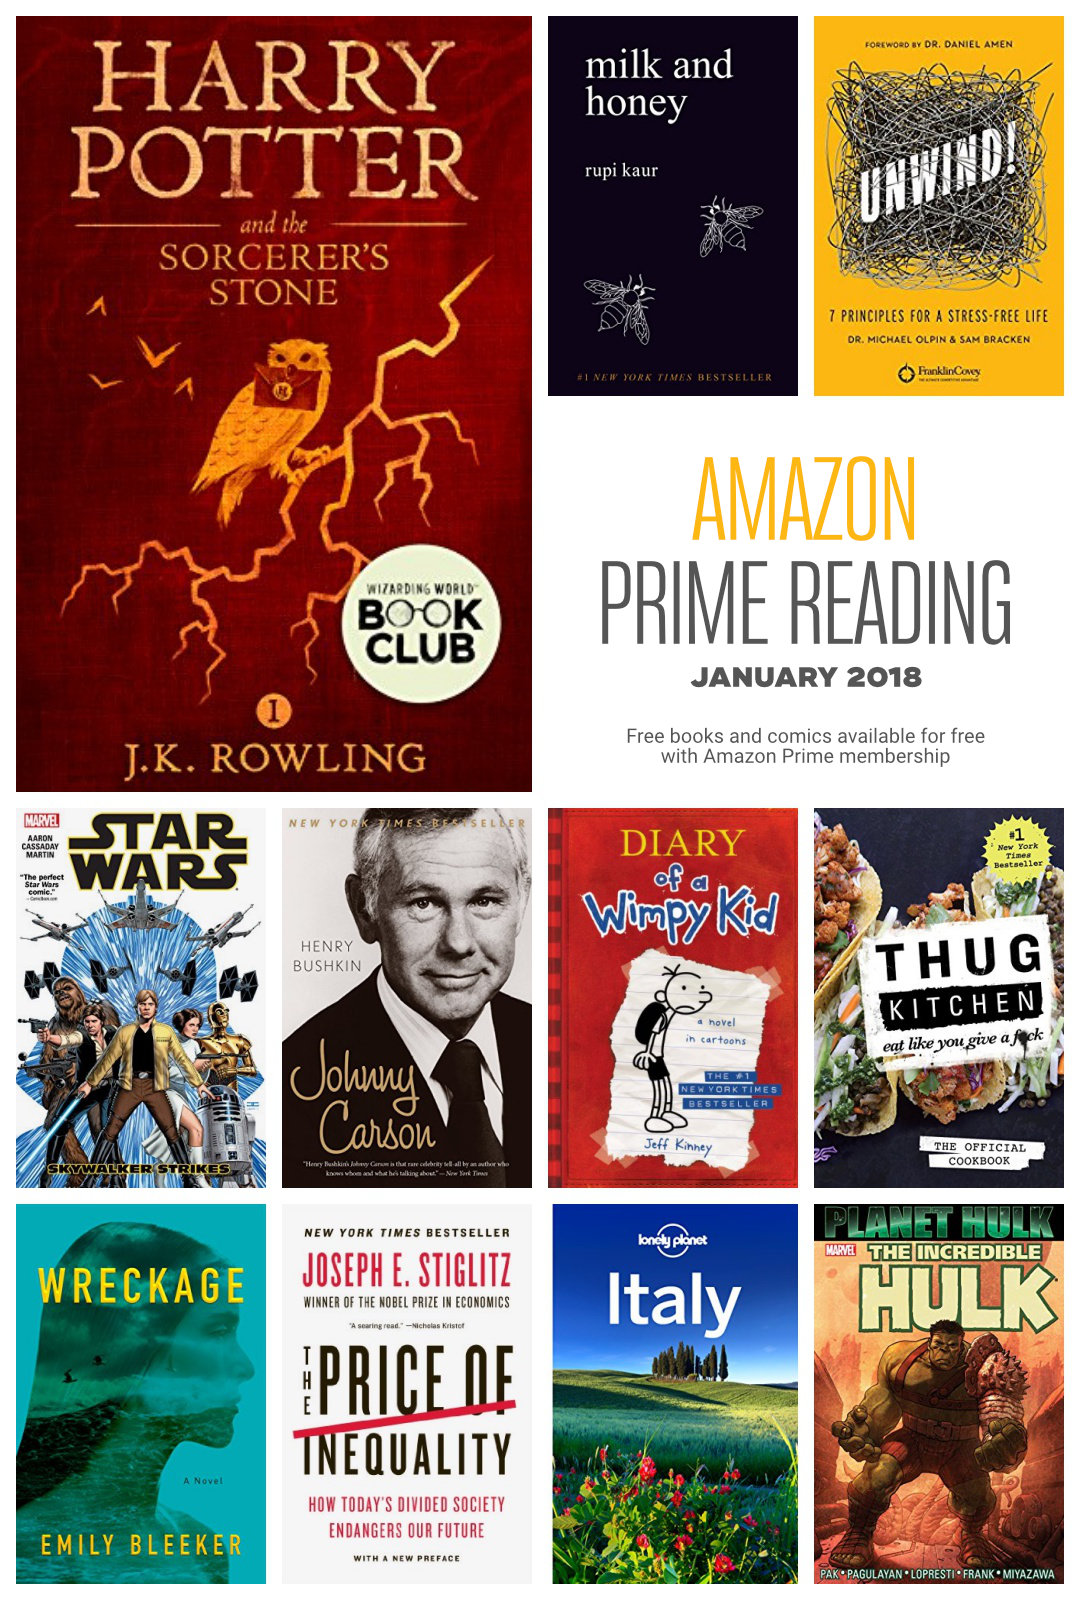 Bestsellers Libros Amazon Prime Reading The 2018 List Of Free Books And Comics